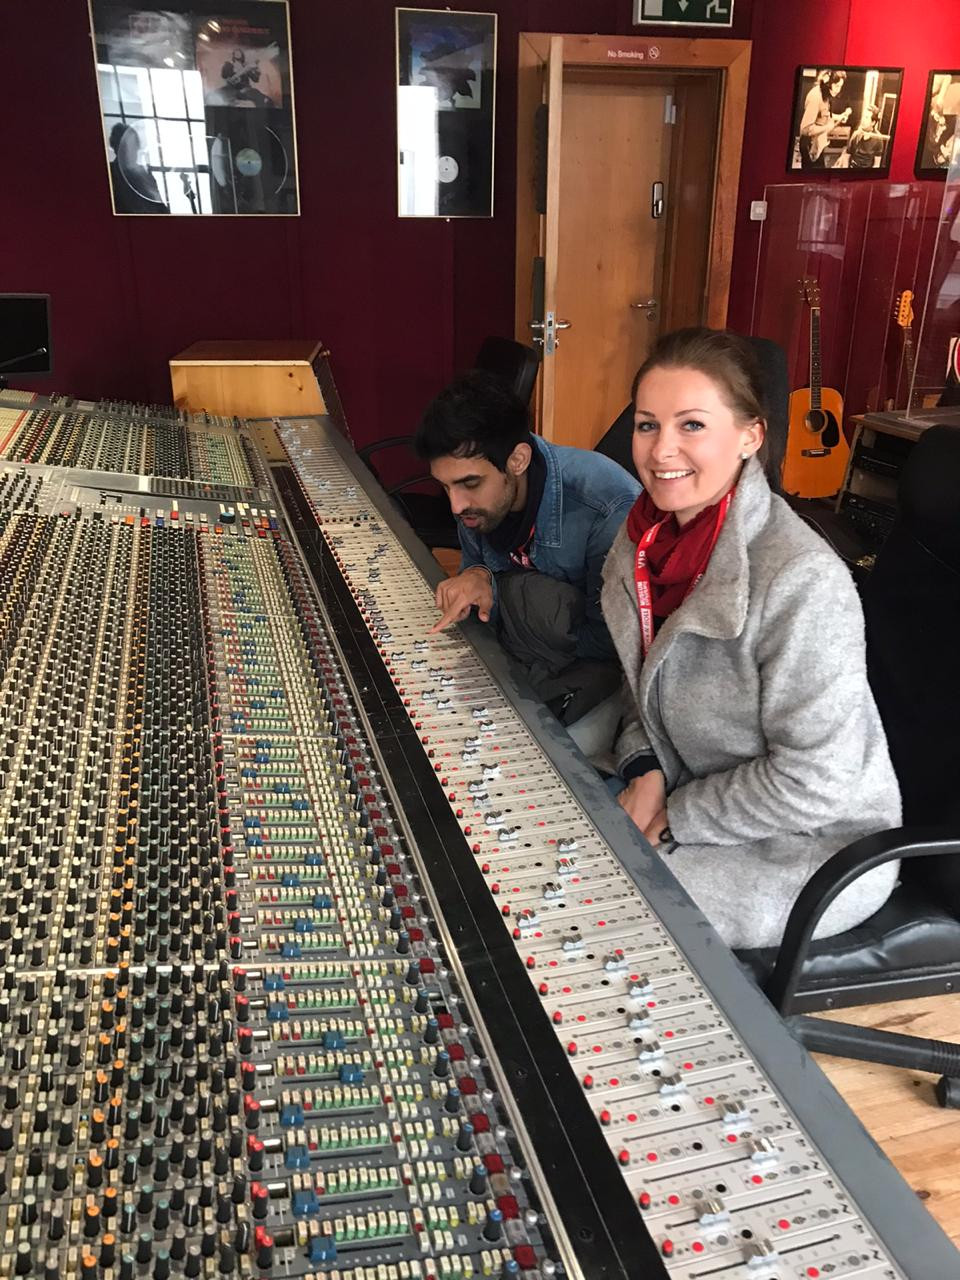 DJ Arsenik and Helene Clara Gamper at the Irish Rock'n'Roll Museum Experience in Dublin